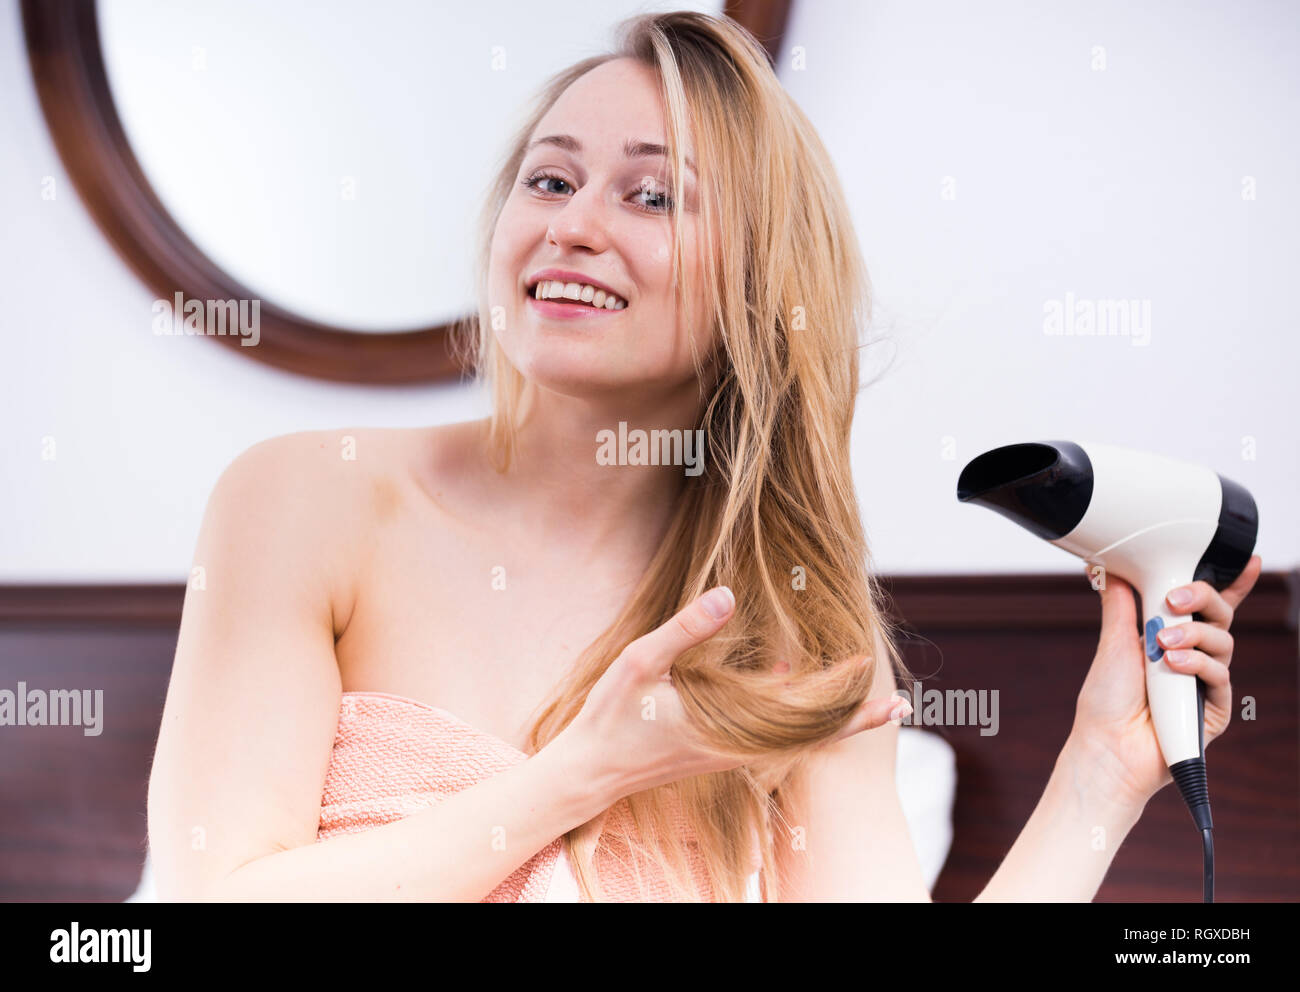 cheerful young woman using hairdryer to style her hair after shower - Stock  Image 61e81bb97